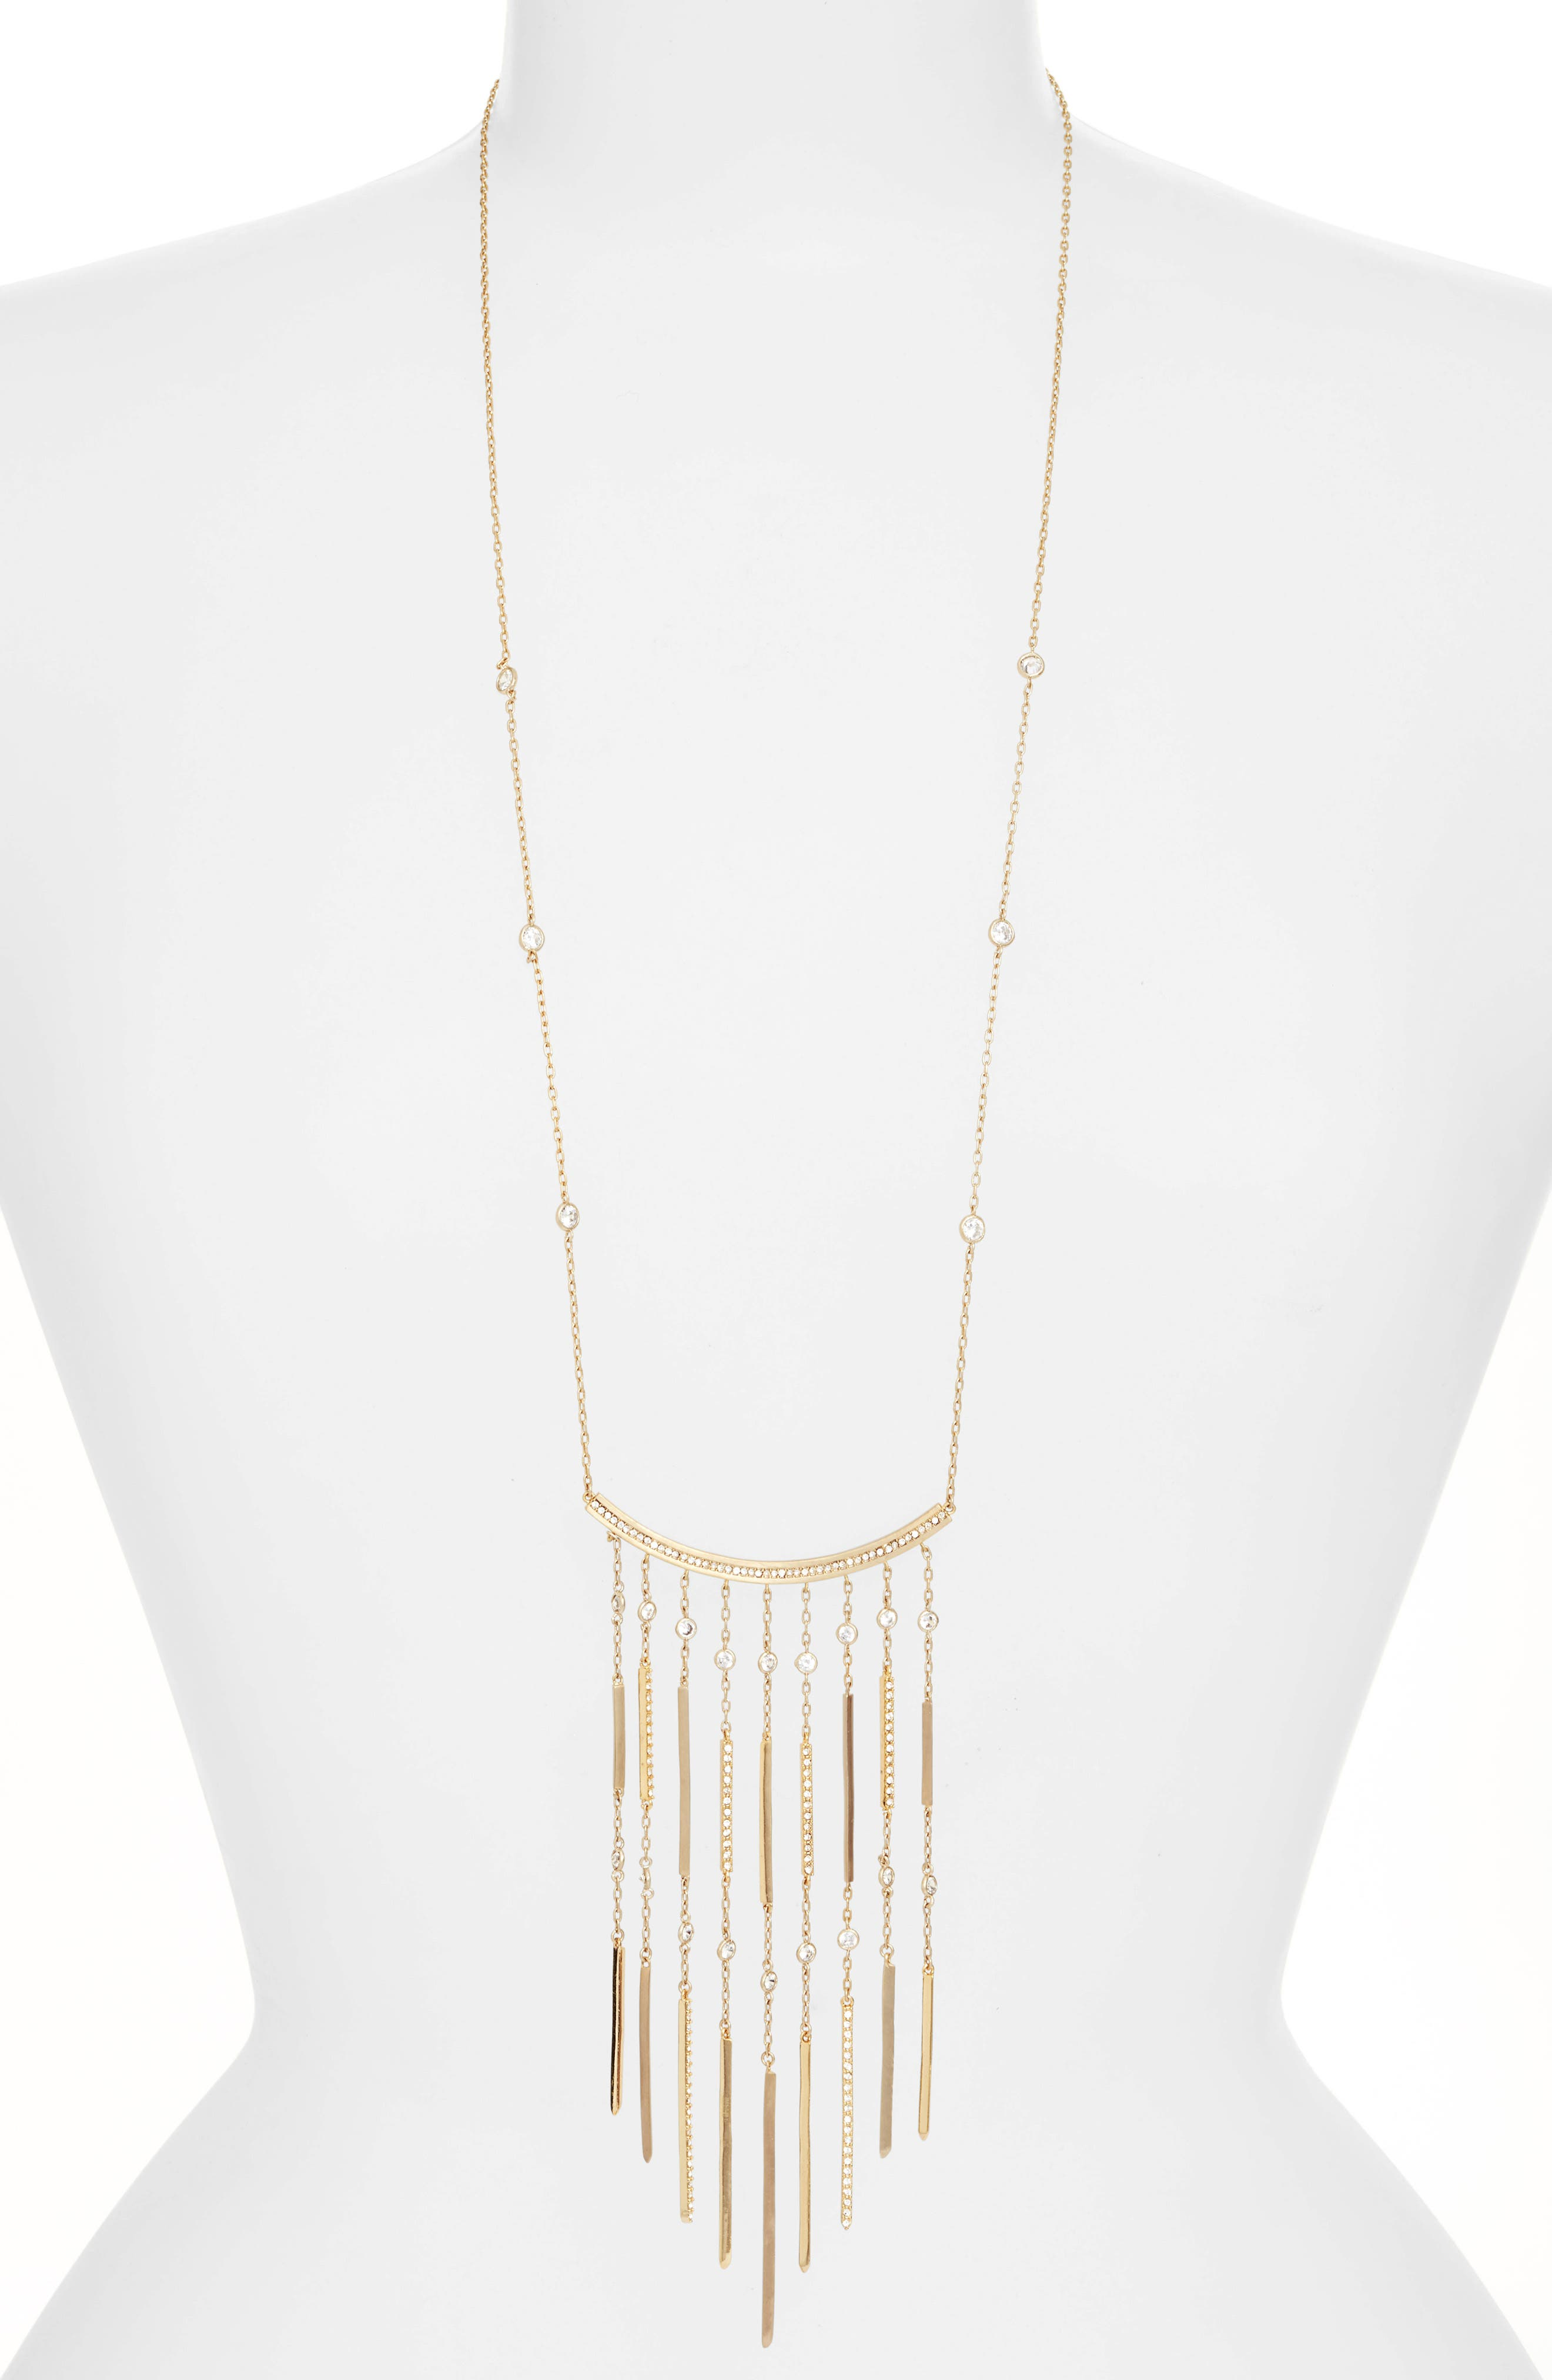 Main Image - Jenny Packham Fringe Pendant Necklace